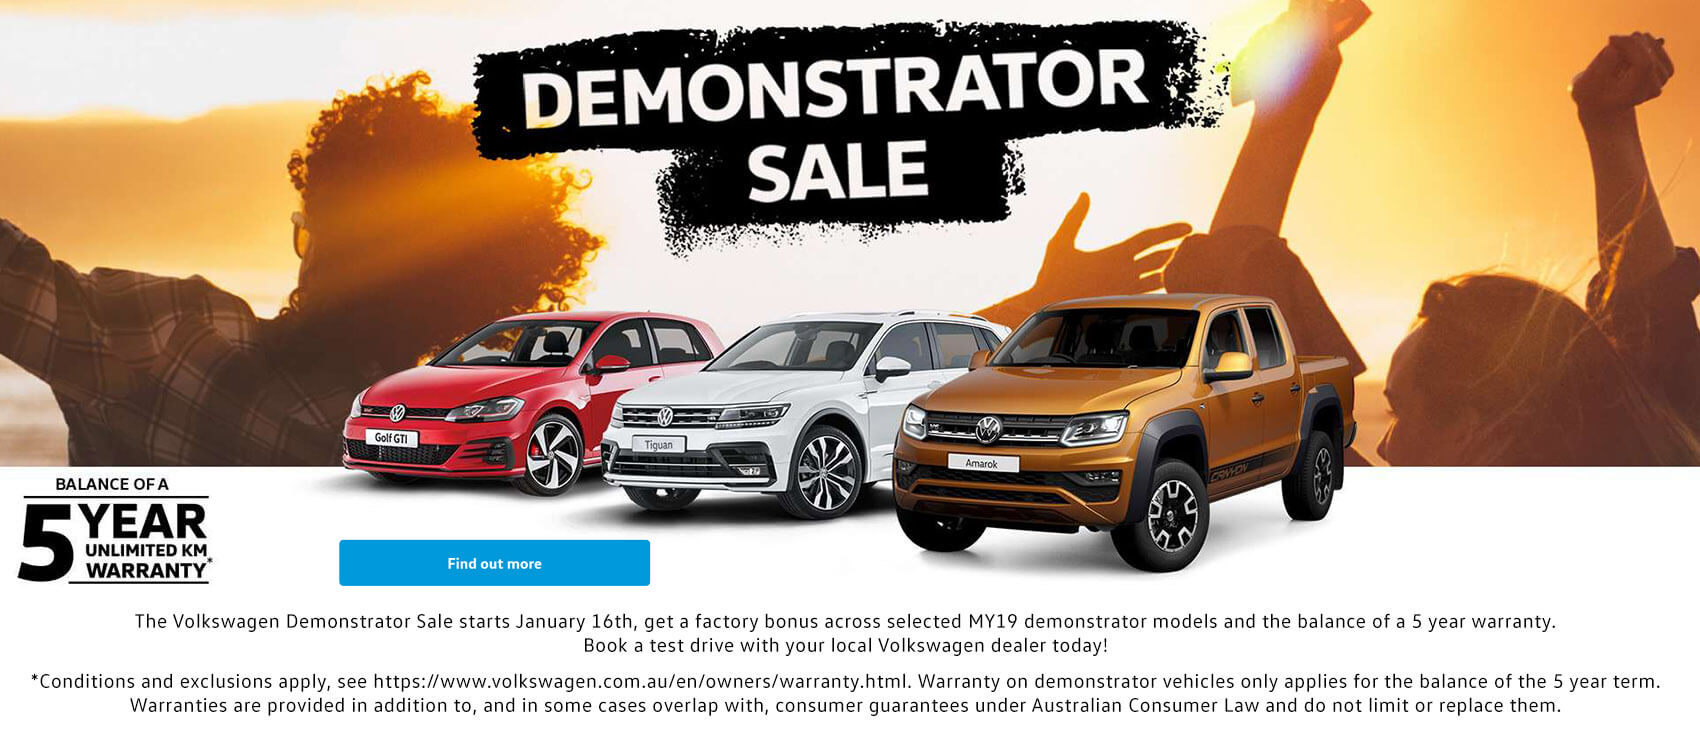 The Volkswagen Demonstrator Sale starts January 16th, get a factory bonus across selected MY19 demonstrator models and the balance of a 5 year warranty. Book a test drive with Taree Volkswagen